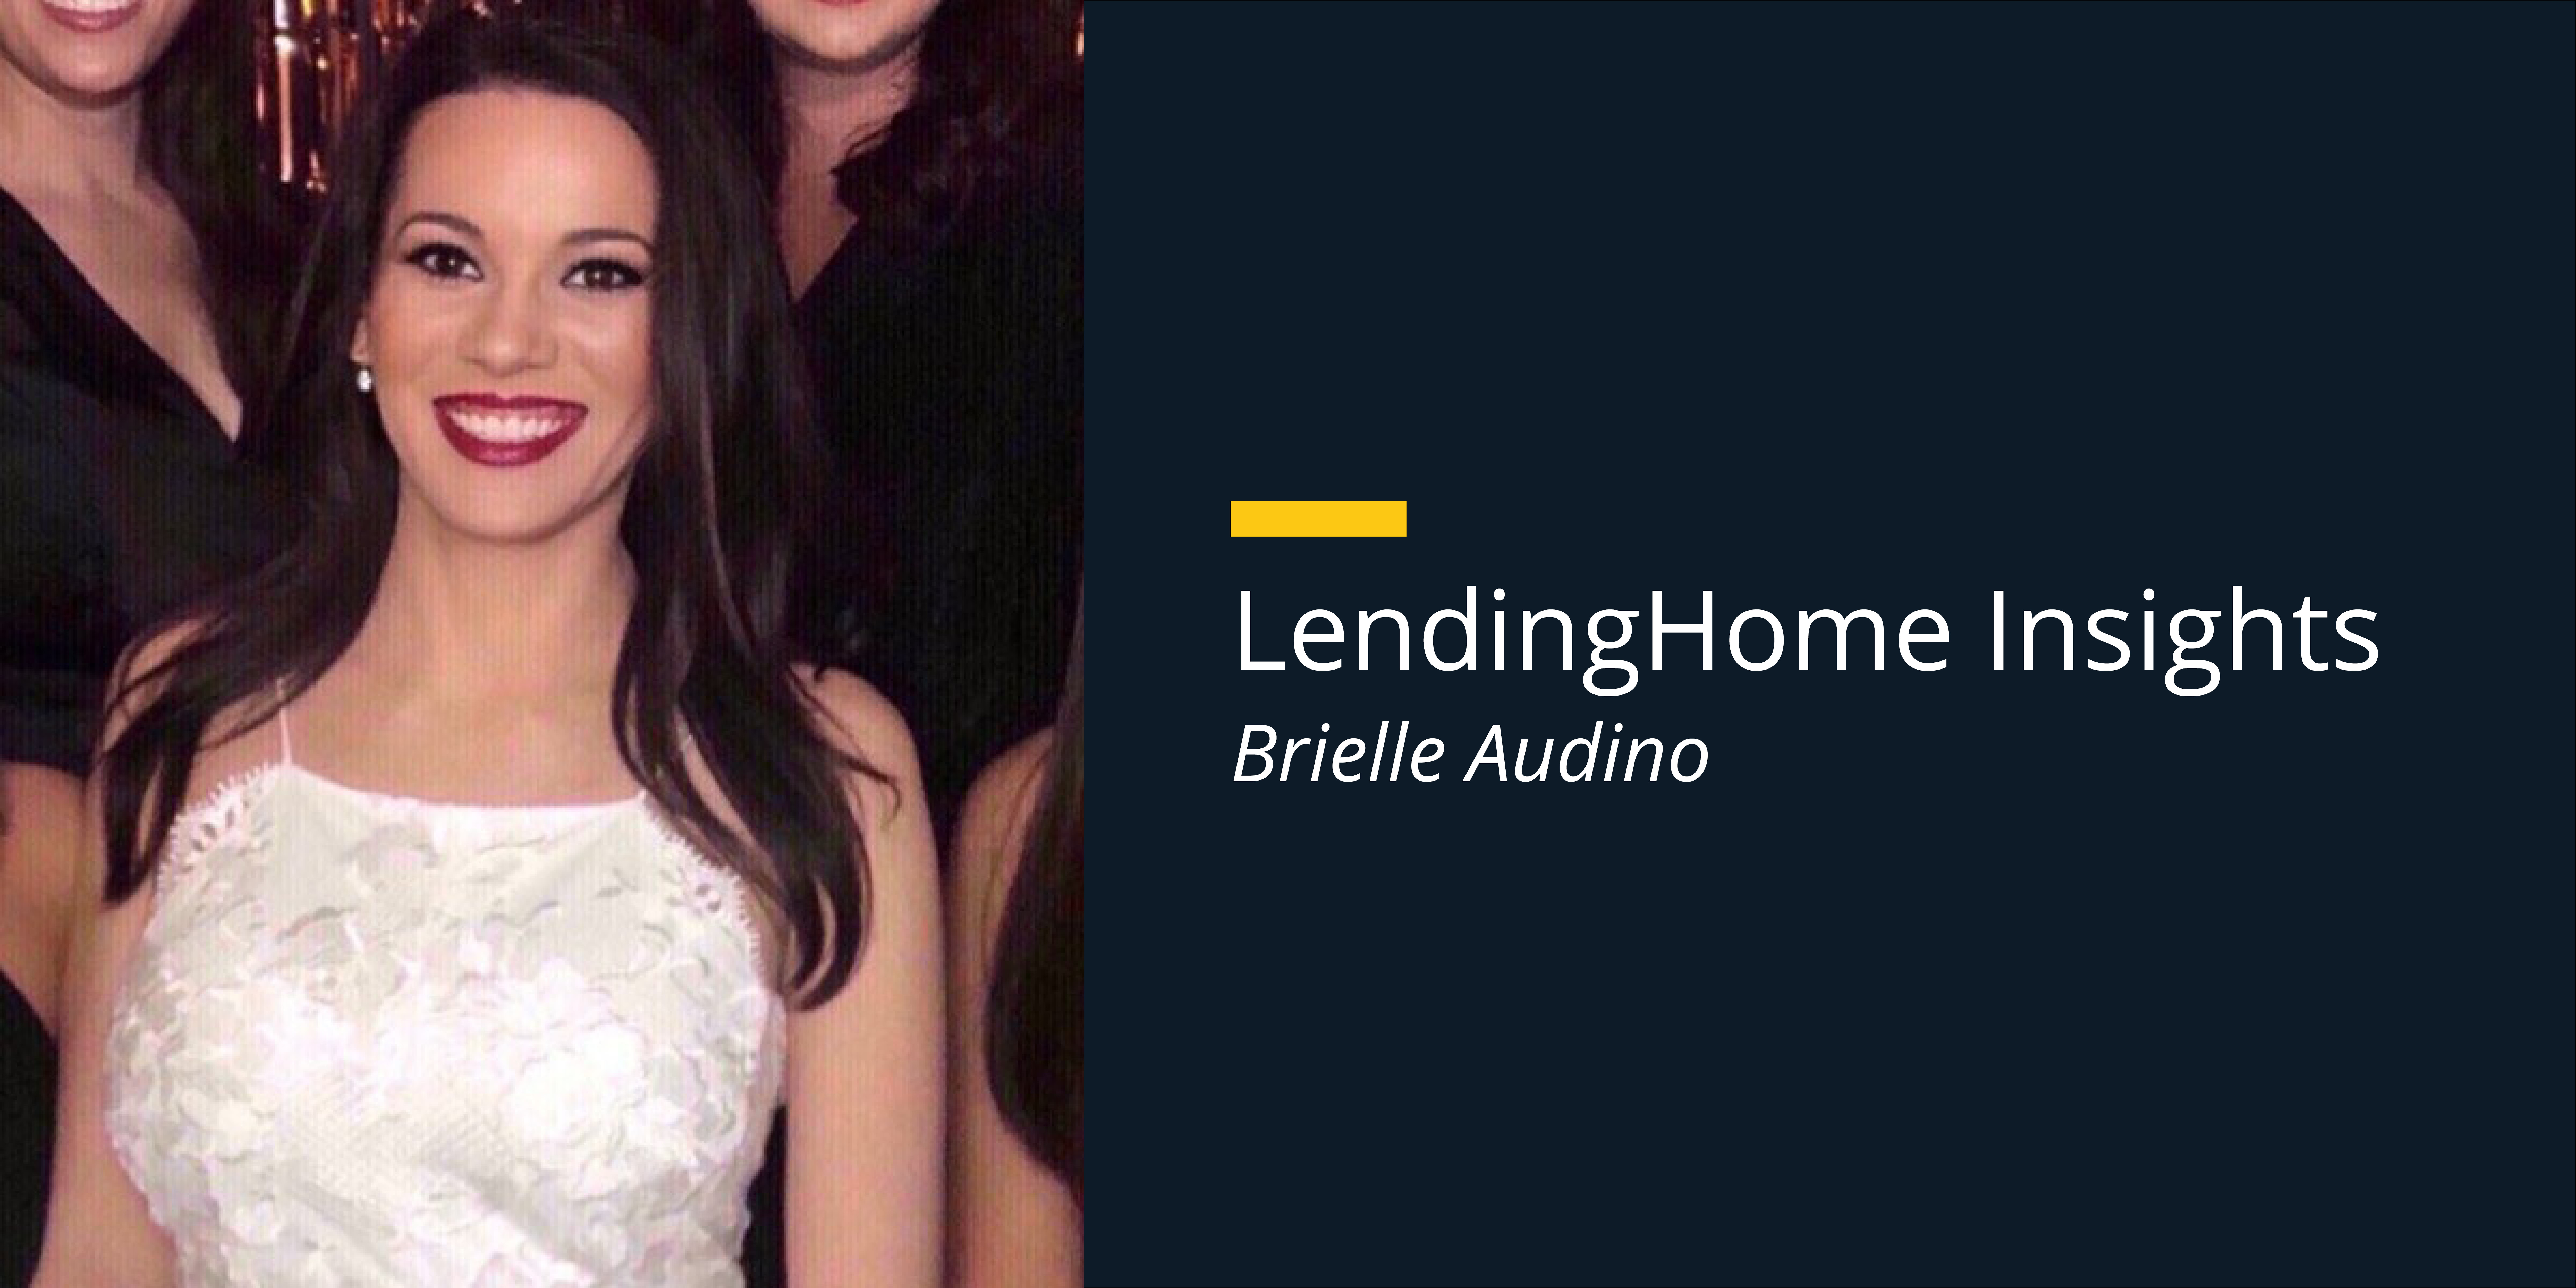 Cultivating the LendingHome Team: Brielle Audino's Journey in Recruiting and Knack to Finding Candidates